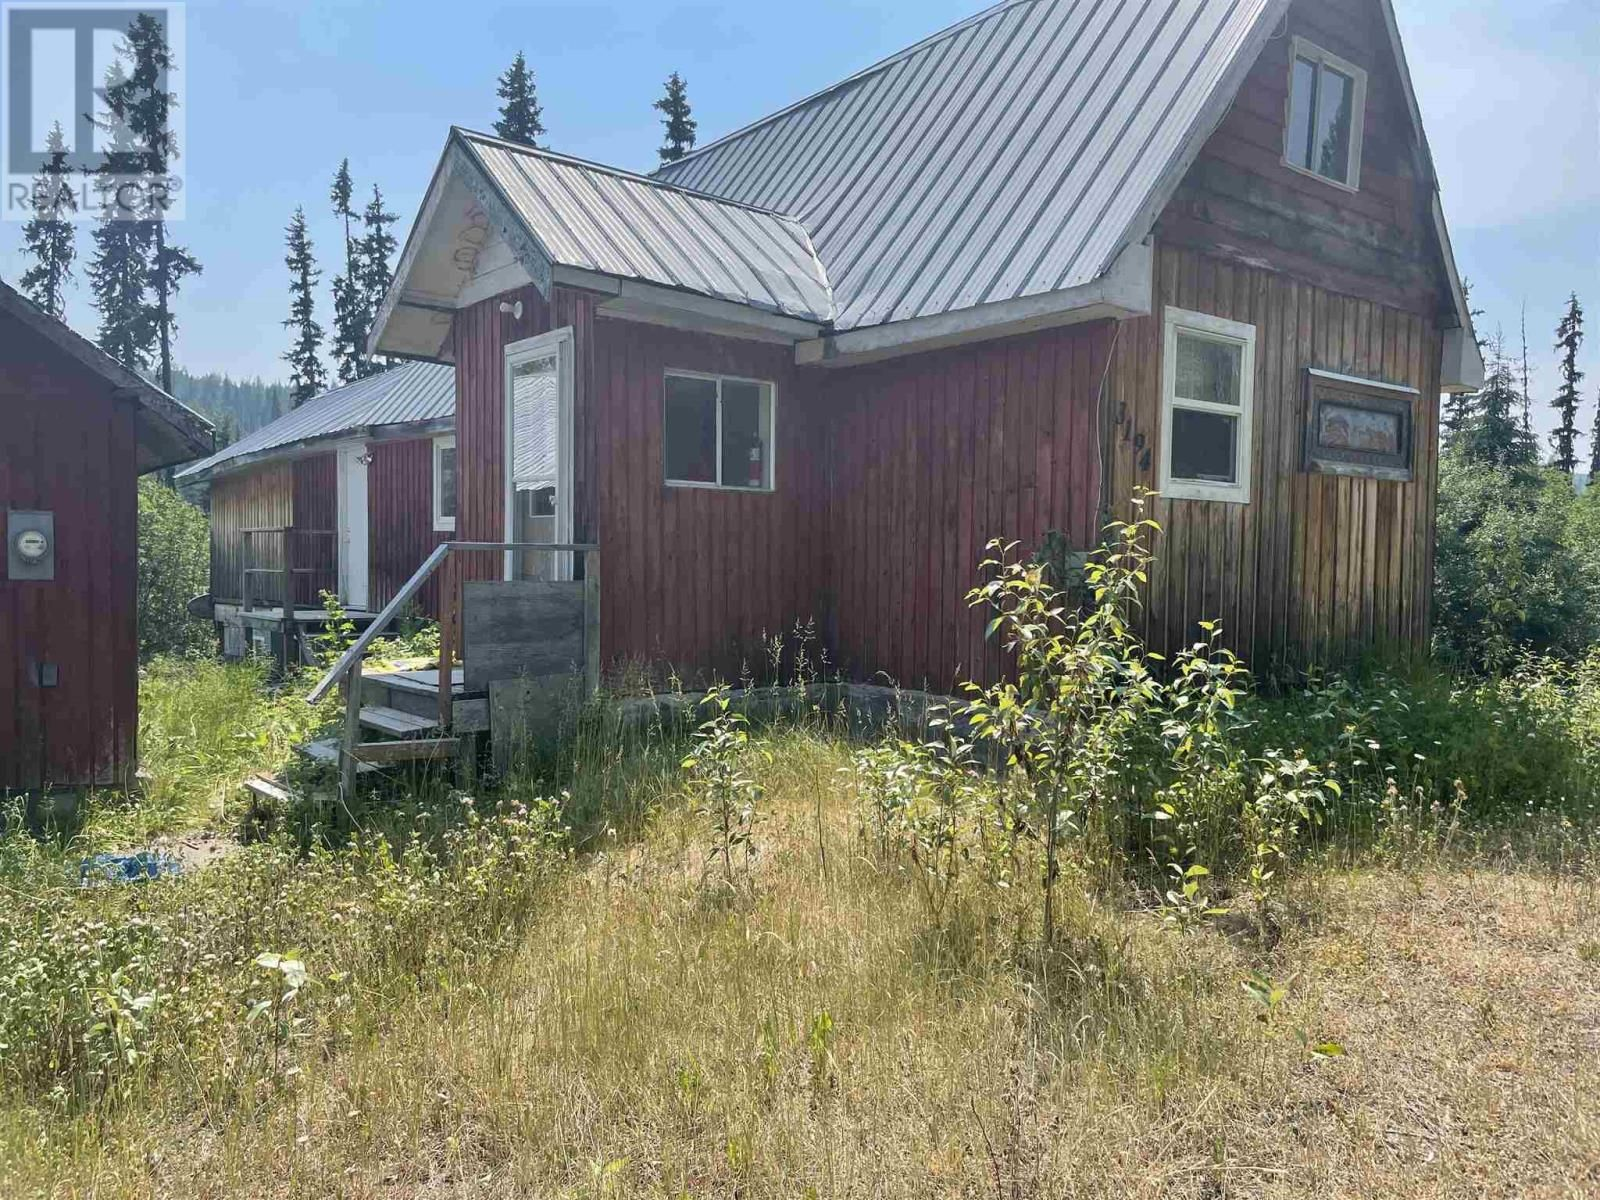 Main Photo: 3194 LITTLE LAKE-QUESNEL RIVER ROAD in Likely: House for sale : MLS®# R2602206